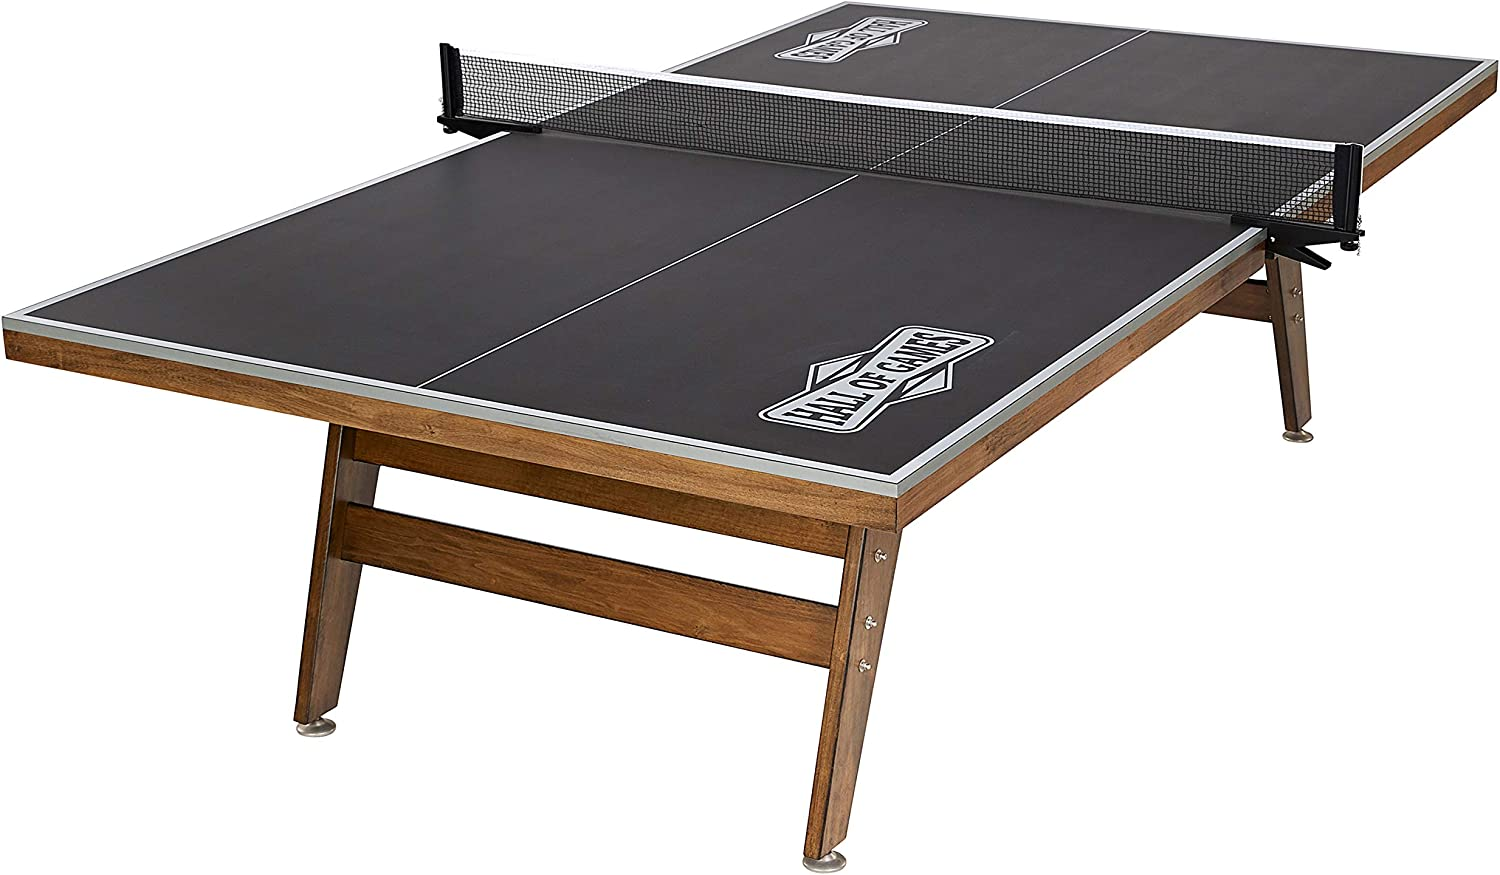 Hall of Games Official 選択 Size 注目ブランド Brown Table Wood Gray Tennis